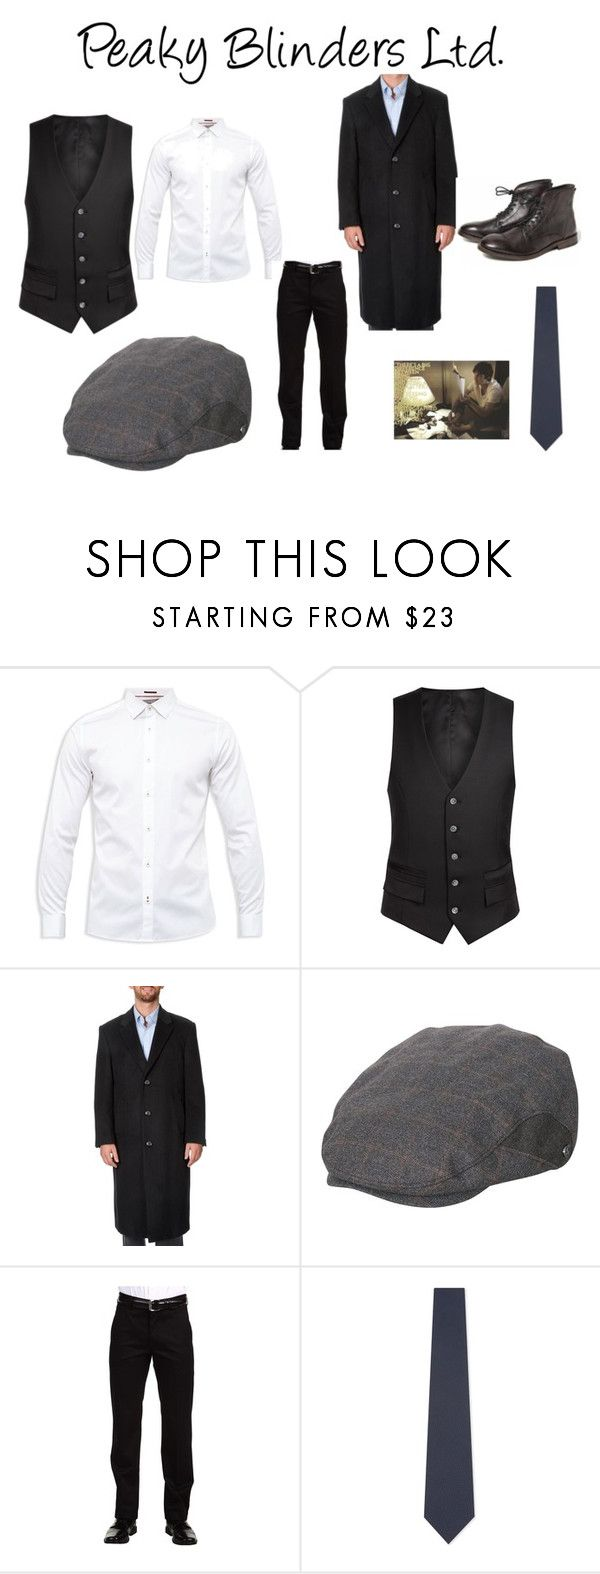 """""""Peaky Blinders Ltd."""" by aesthetickpoptrash on Polyvore featuring Ted Baker, Diverso, Pronto Moda, Dockers, BOSS Hugo Boss, Murphy, men's fashion and menswear"""